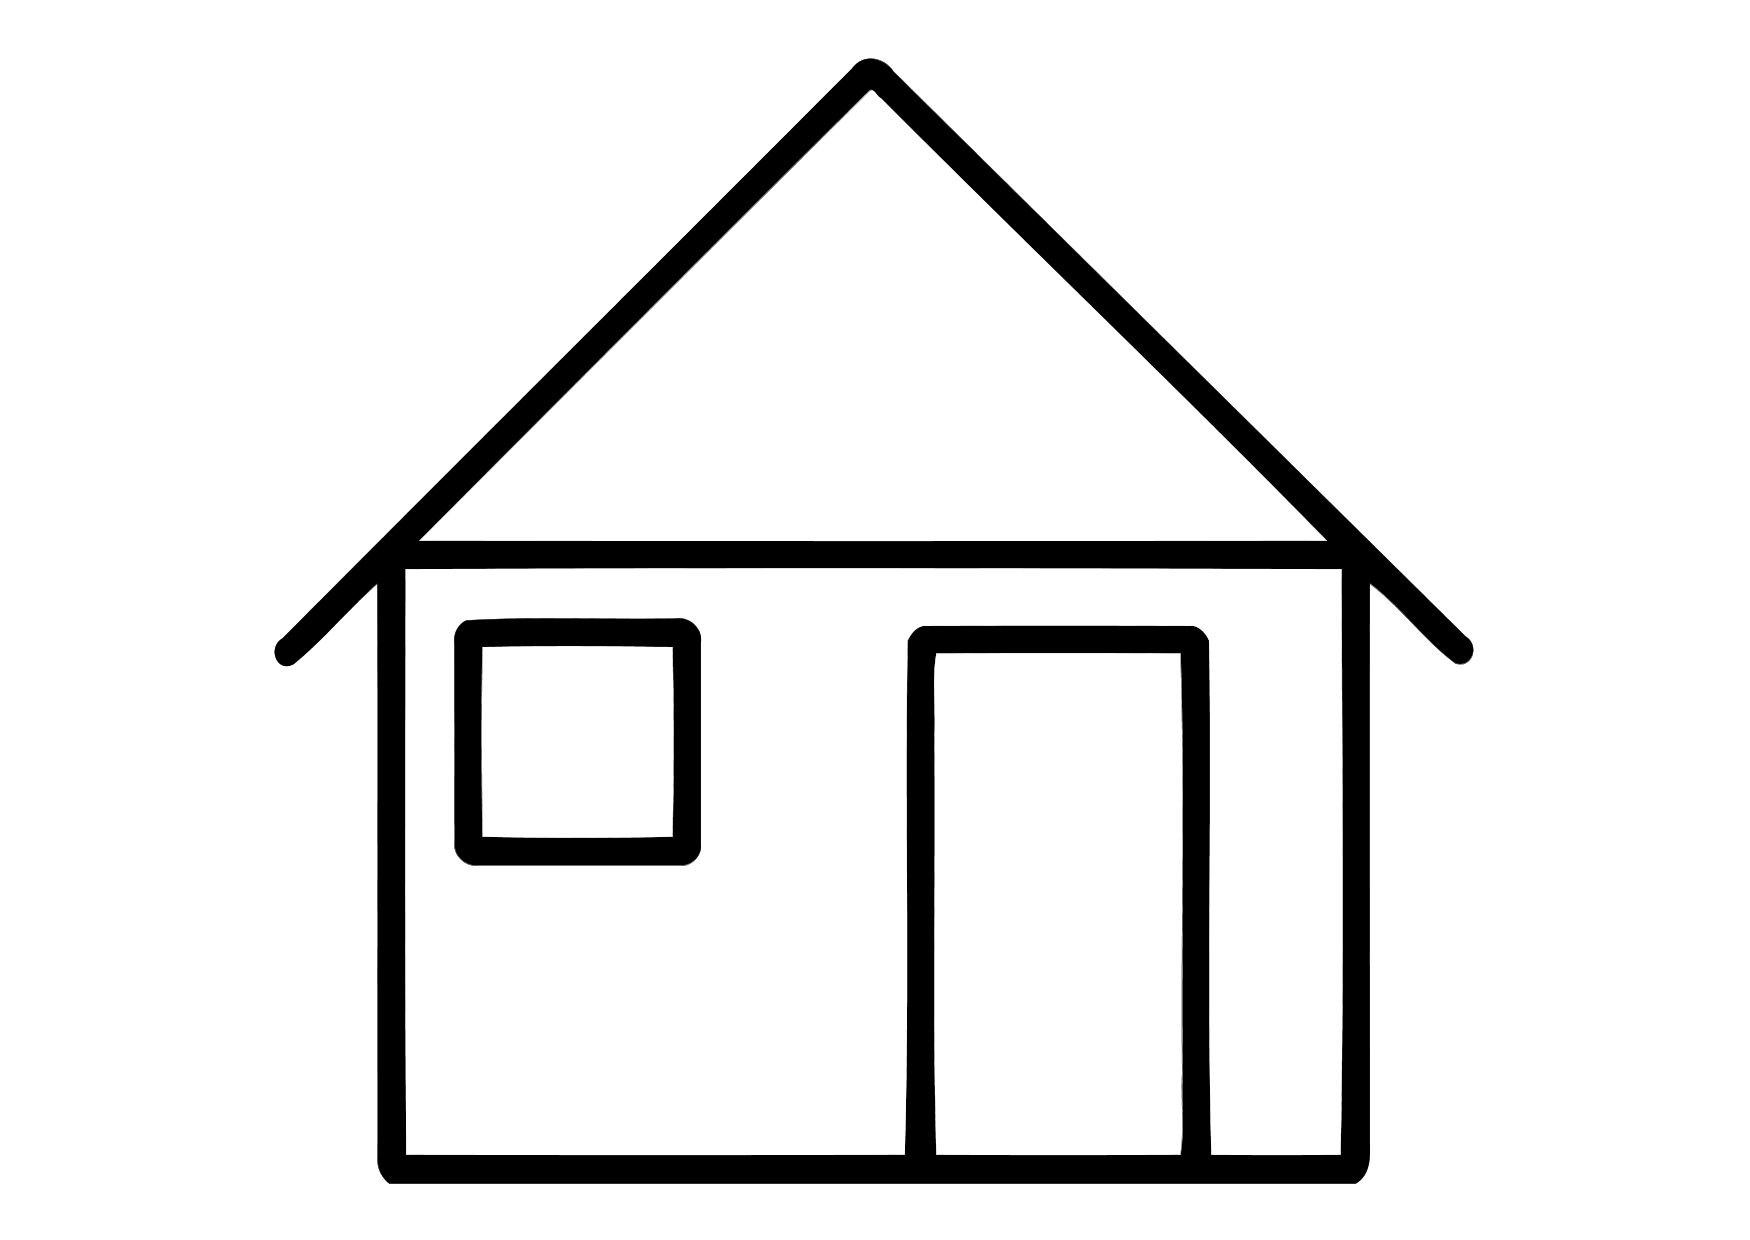 home coloring image sunny day house coloring page free clip art coloring image home